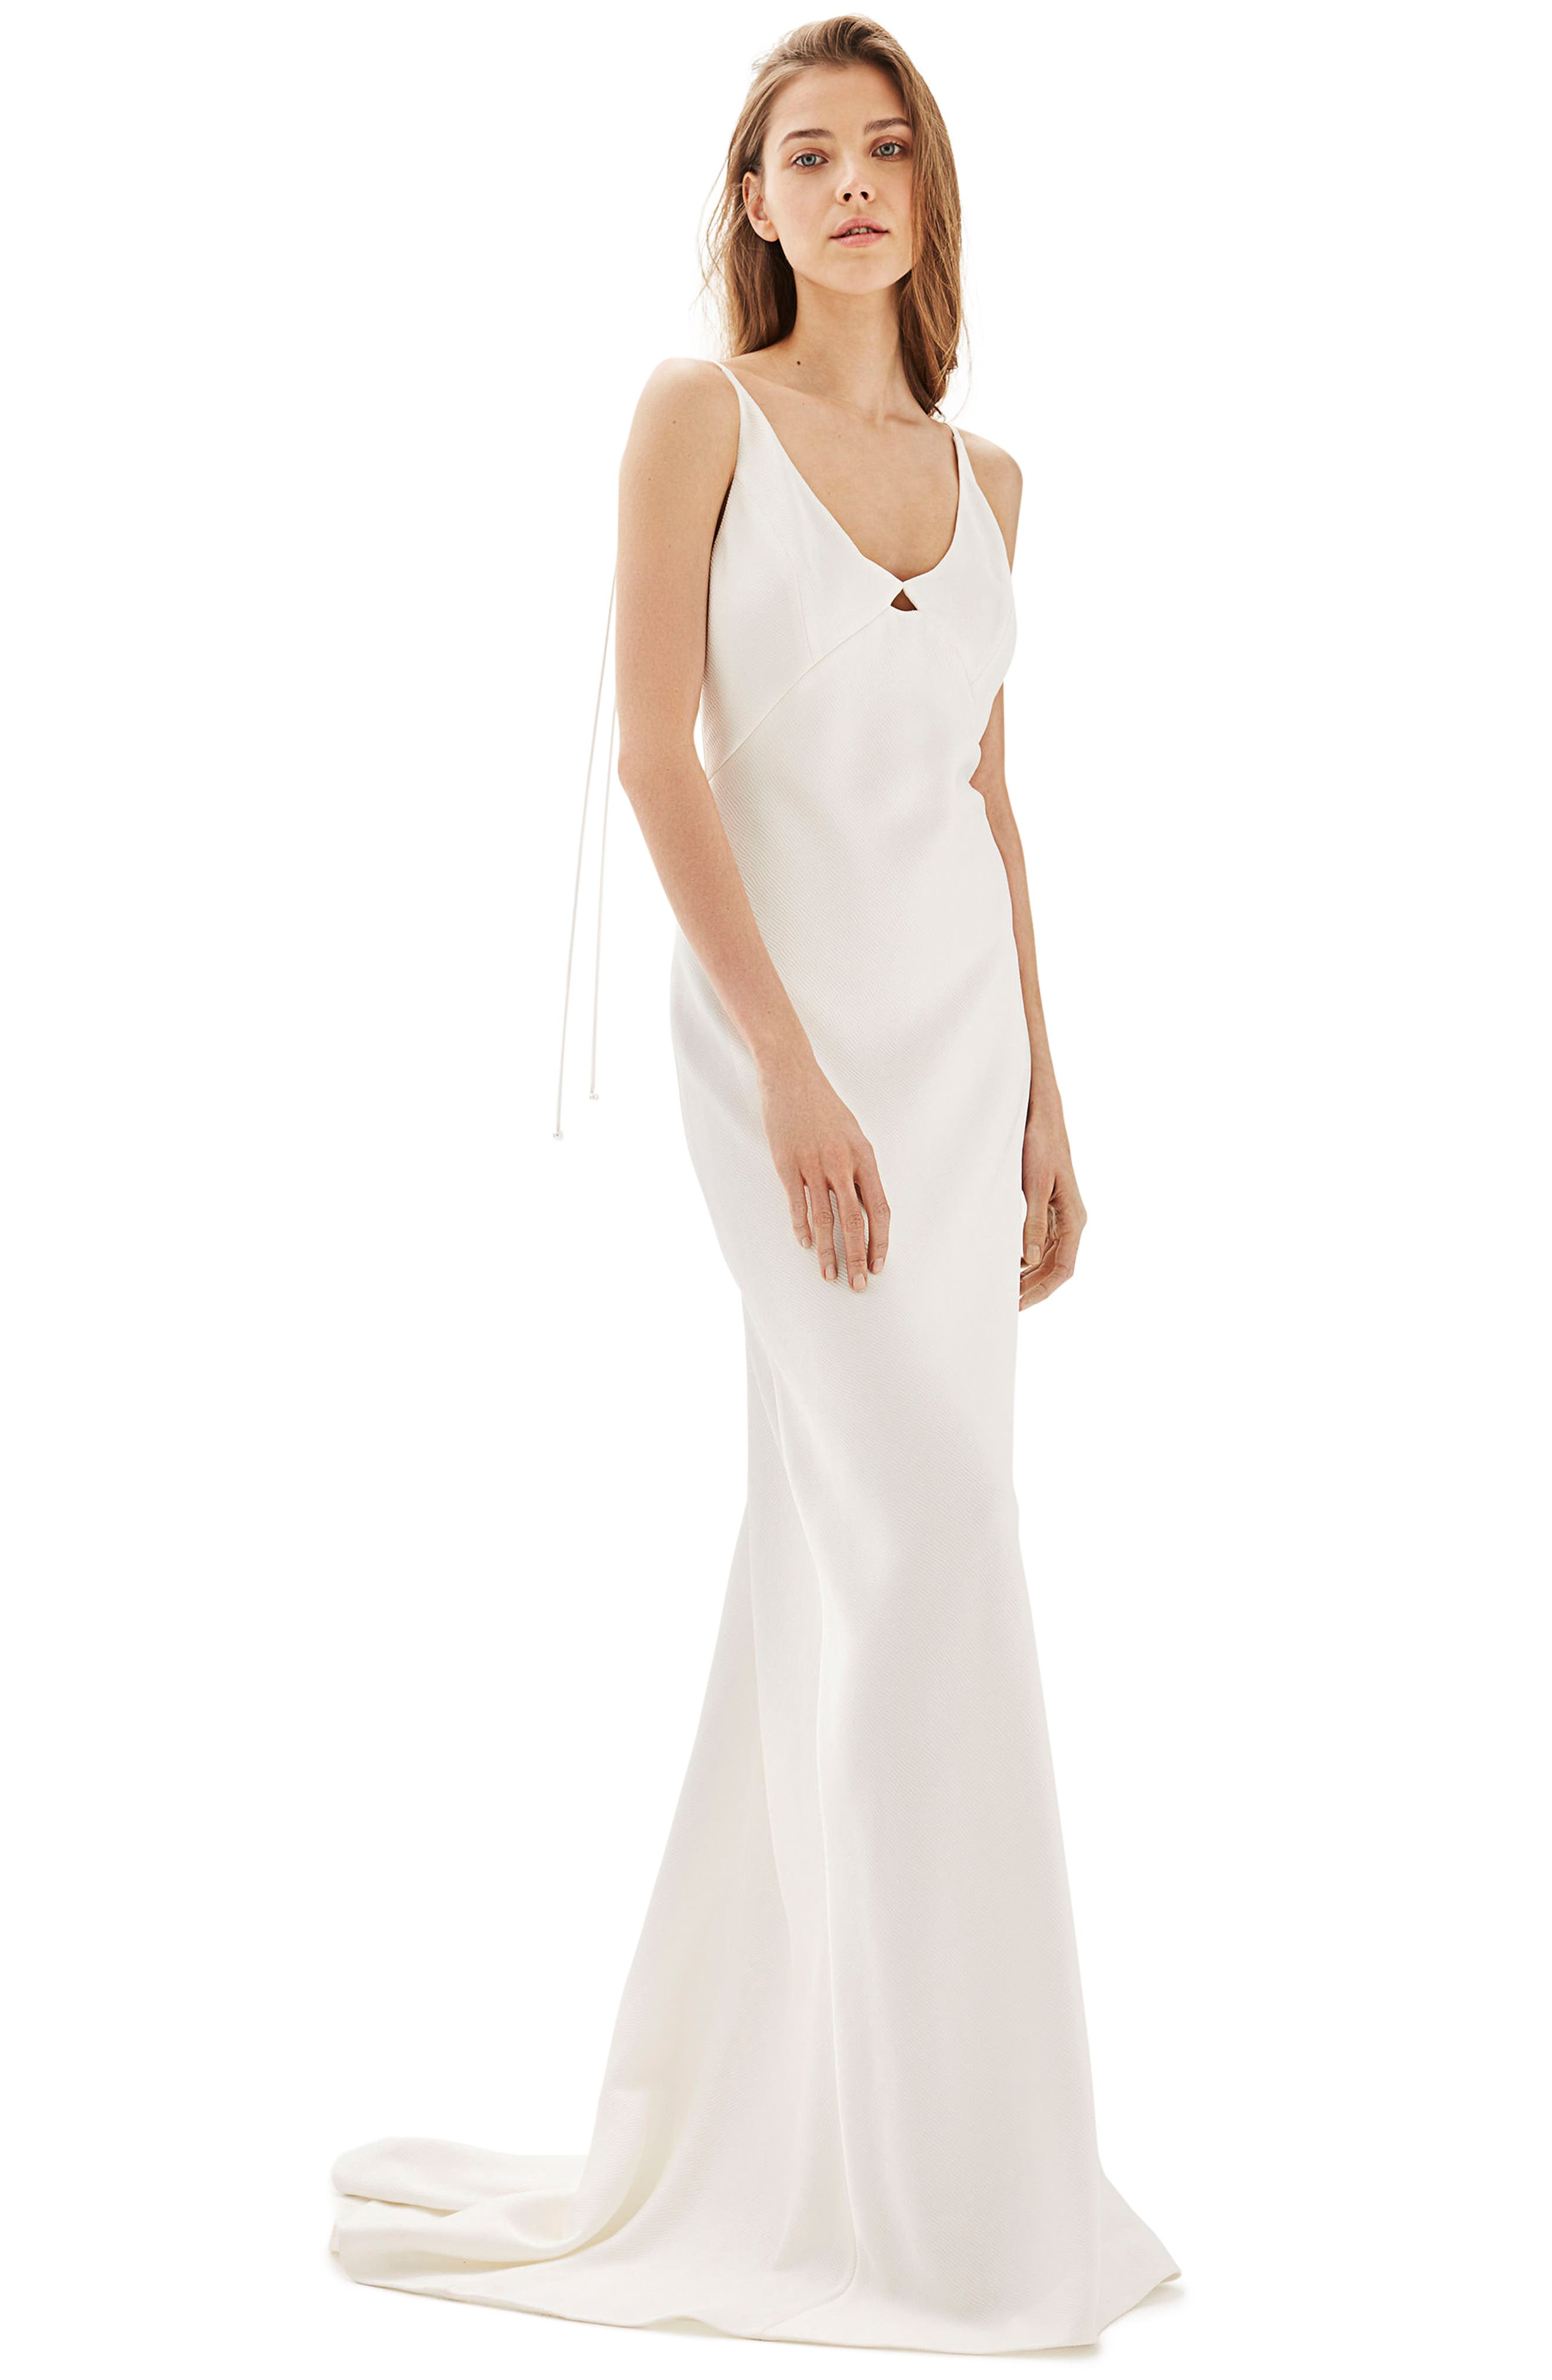 Bride V-Neck Satin Sheath Gown,                         Main,                         color, Ivory